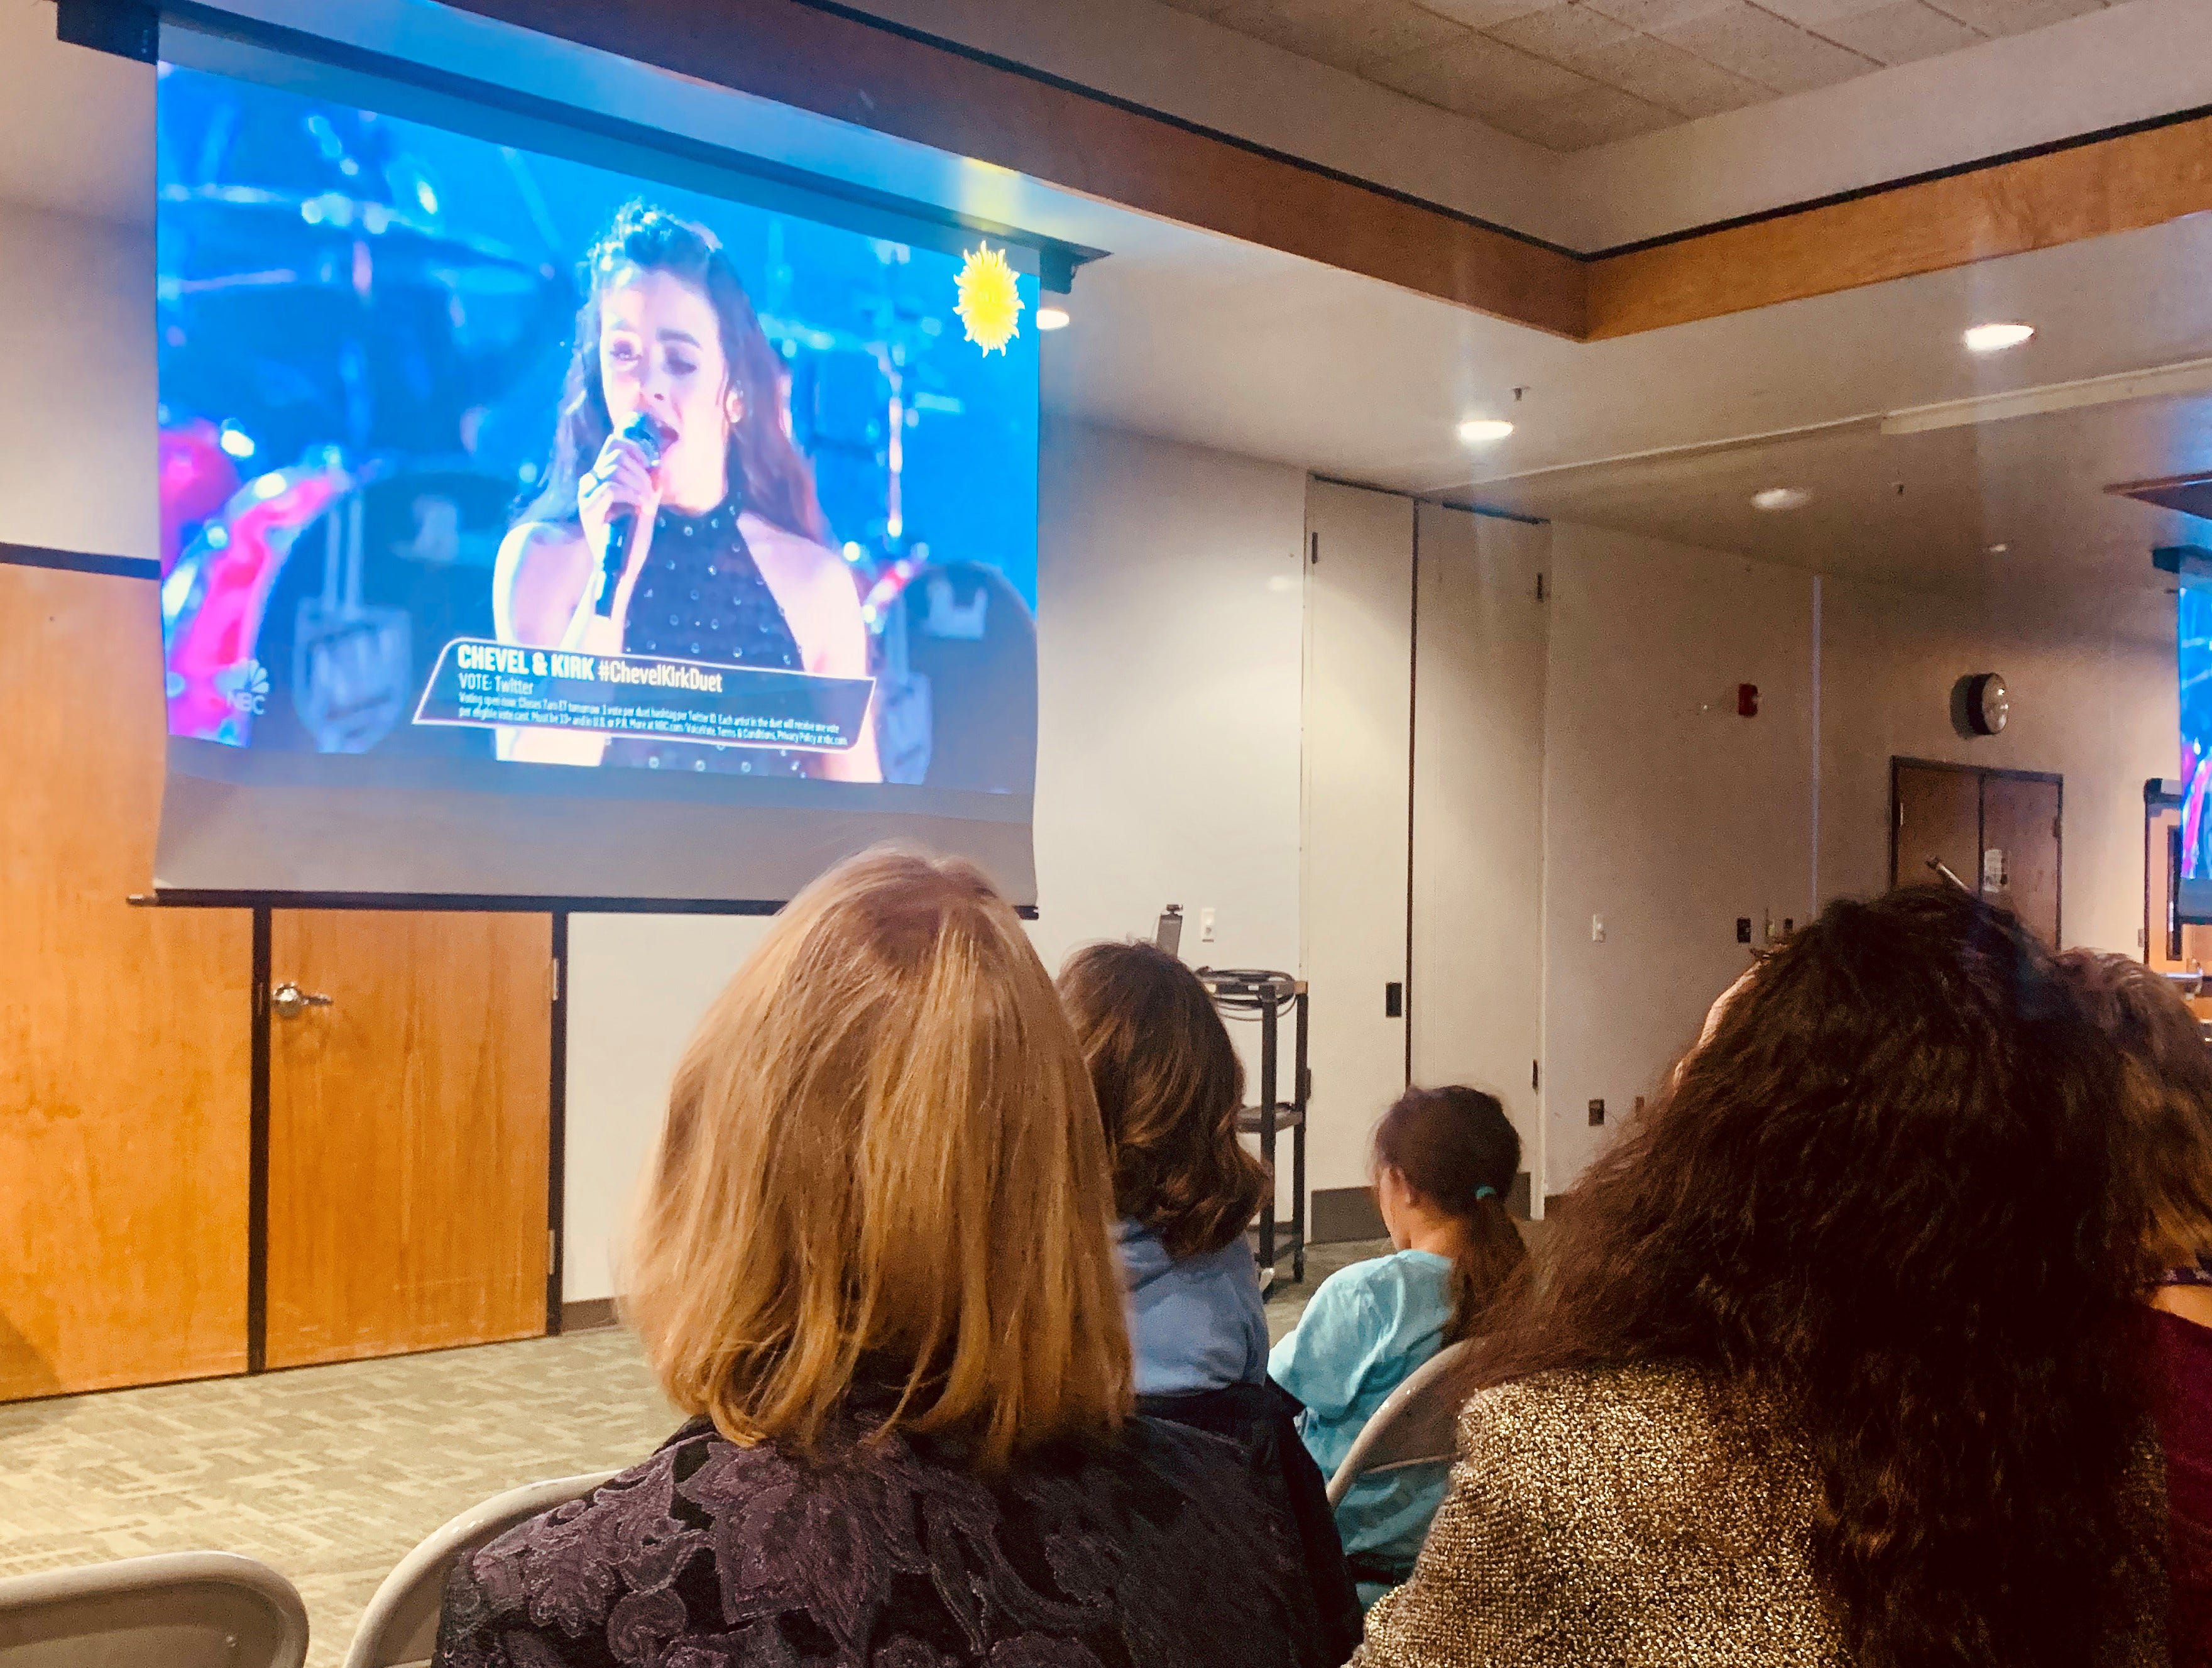 Fans and supporters of Farmington High School junior Chevel Shepherd watched her duet performance Monday night in the Henderson Fine Arts Center at San Juan College.